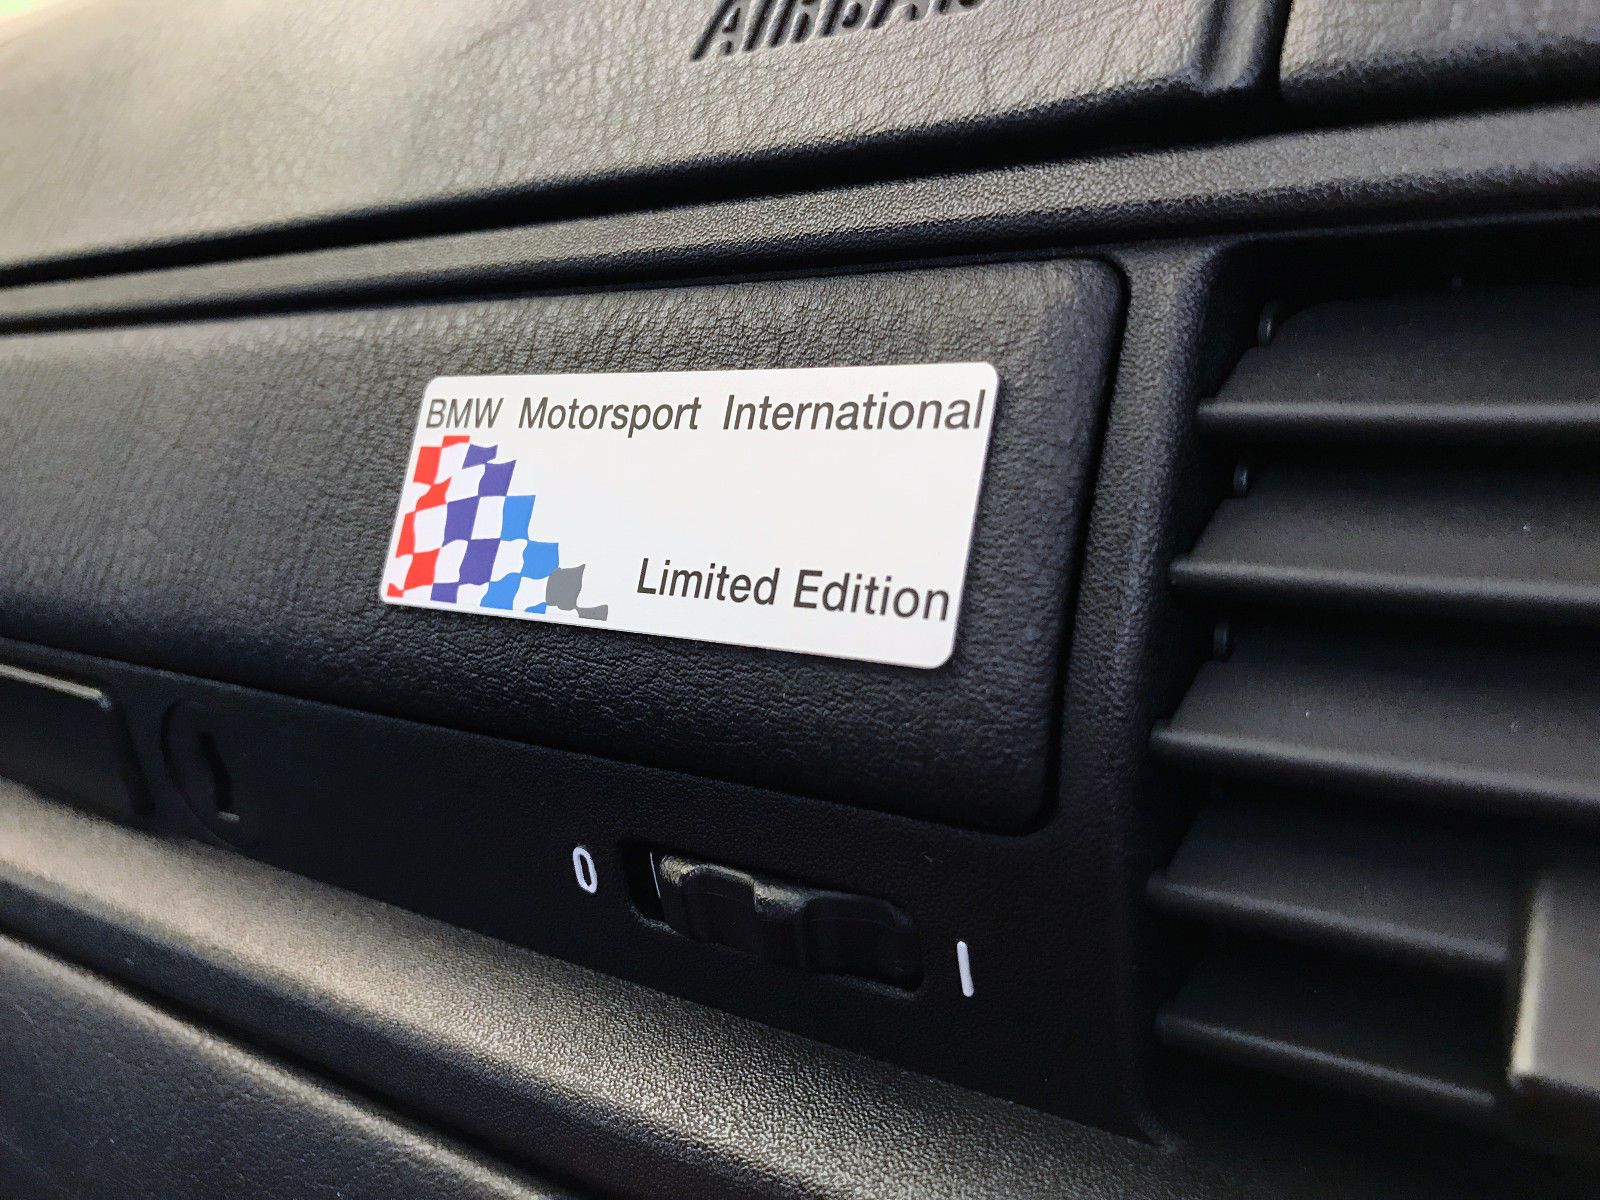 BMW Motorsport International Limited Edition Glovebox Trim Plaques